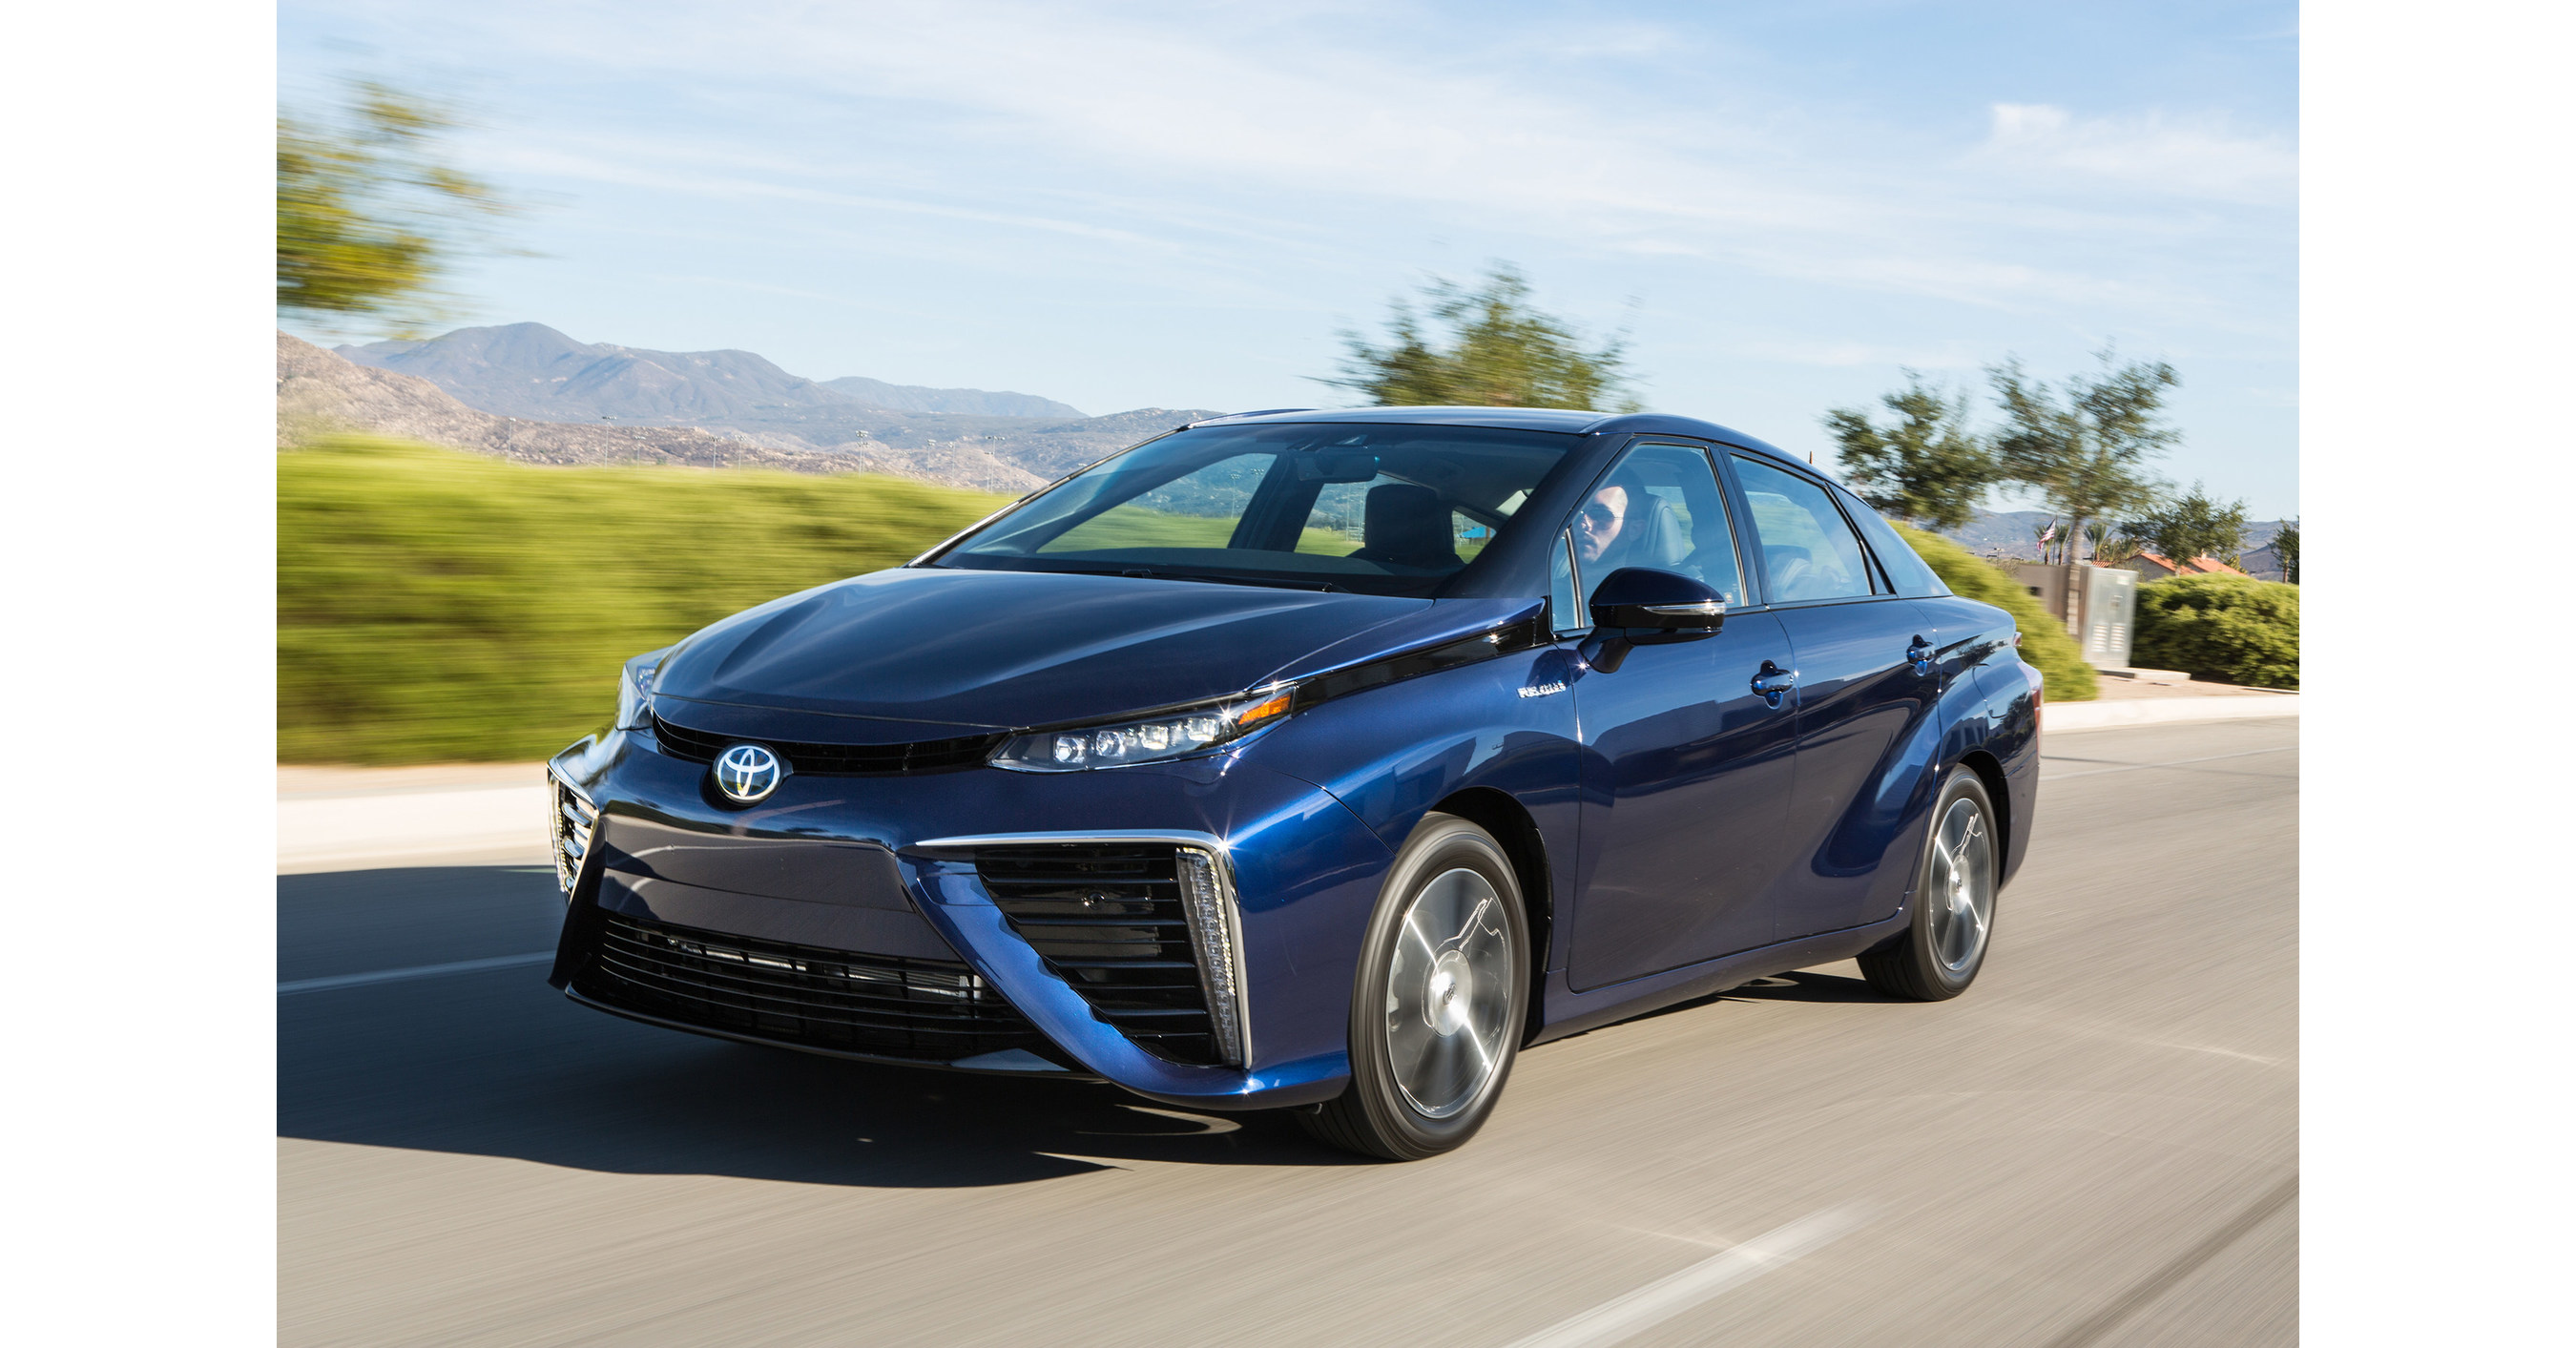 Toyota Mirai Fuel Cell Electric Vehicle For Sale In B C Starting In July